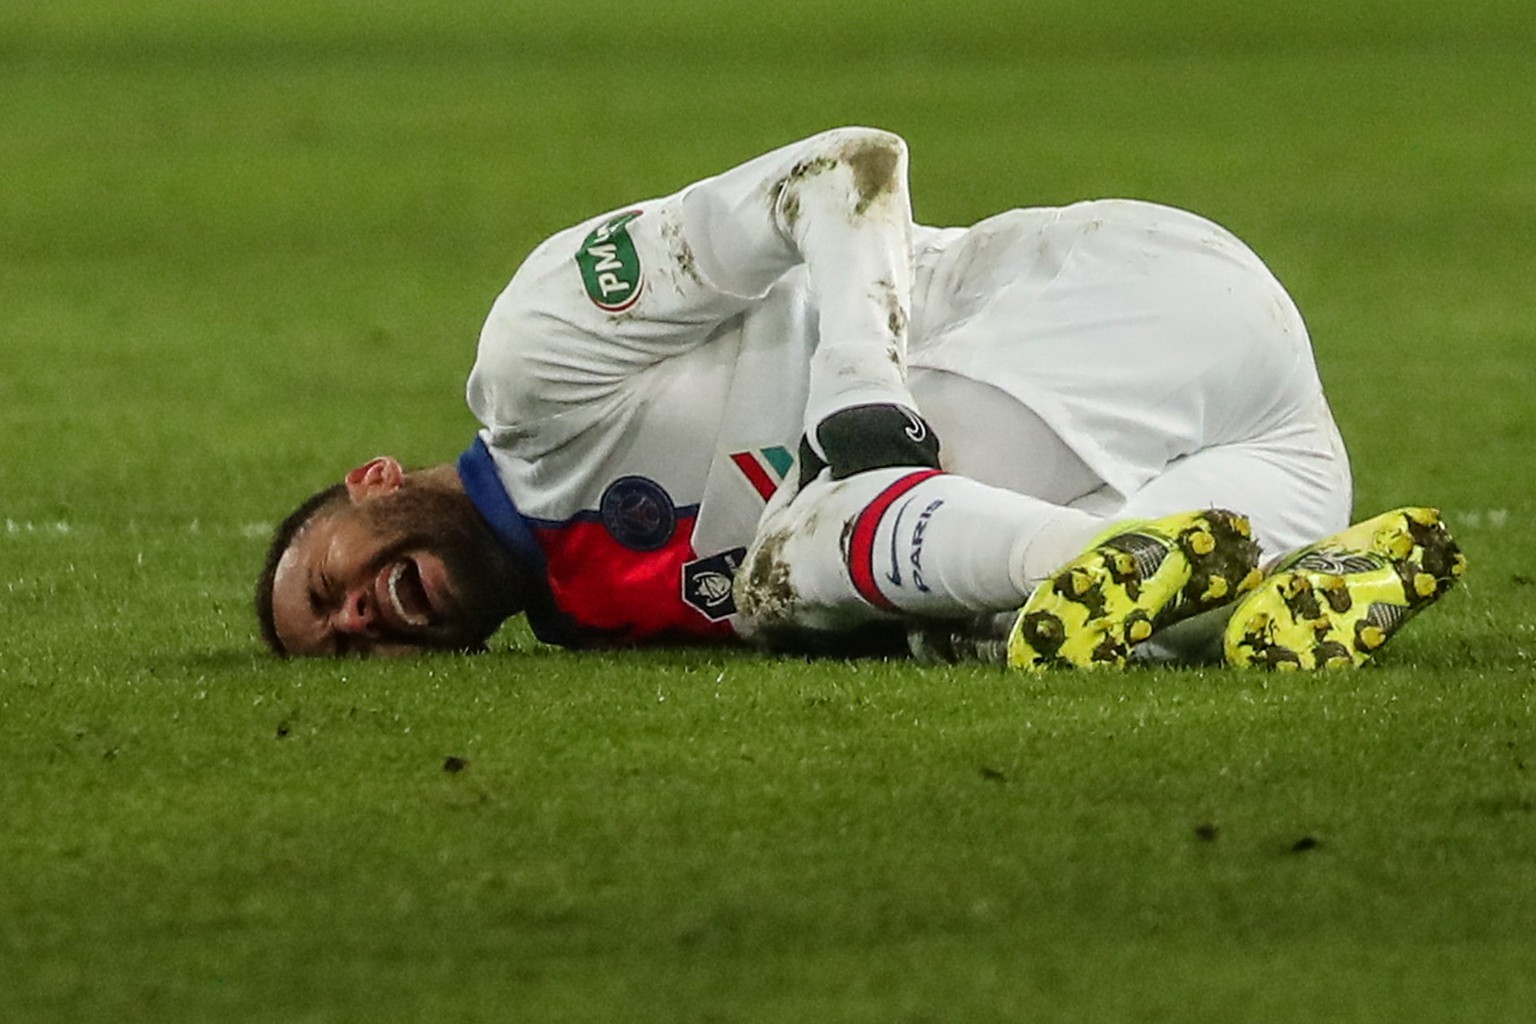 epa09002491 Neymar Jr of Paris Saint Germain lies injured on the pitch during the Coupe de France round of 32 soccer match between SM Caen and PSG in Caen, north western France, 10 February 2021.  EPA/CHRISTOPHE PETIT TESSON